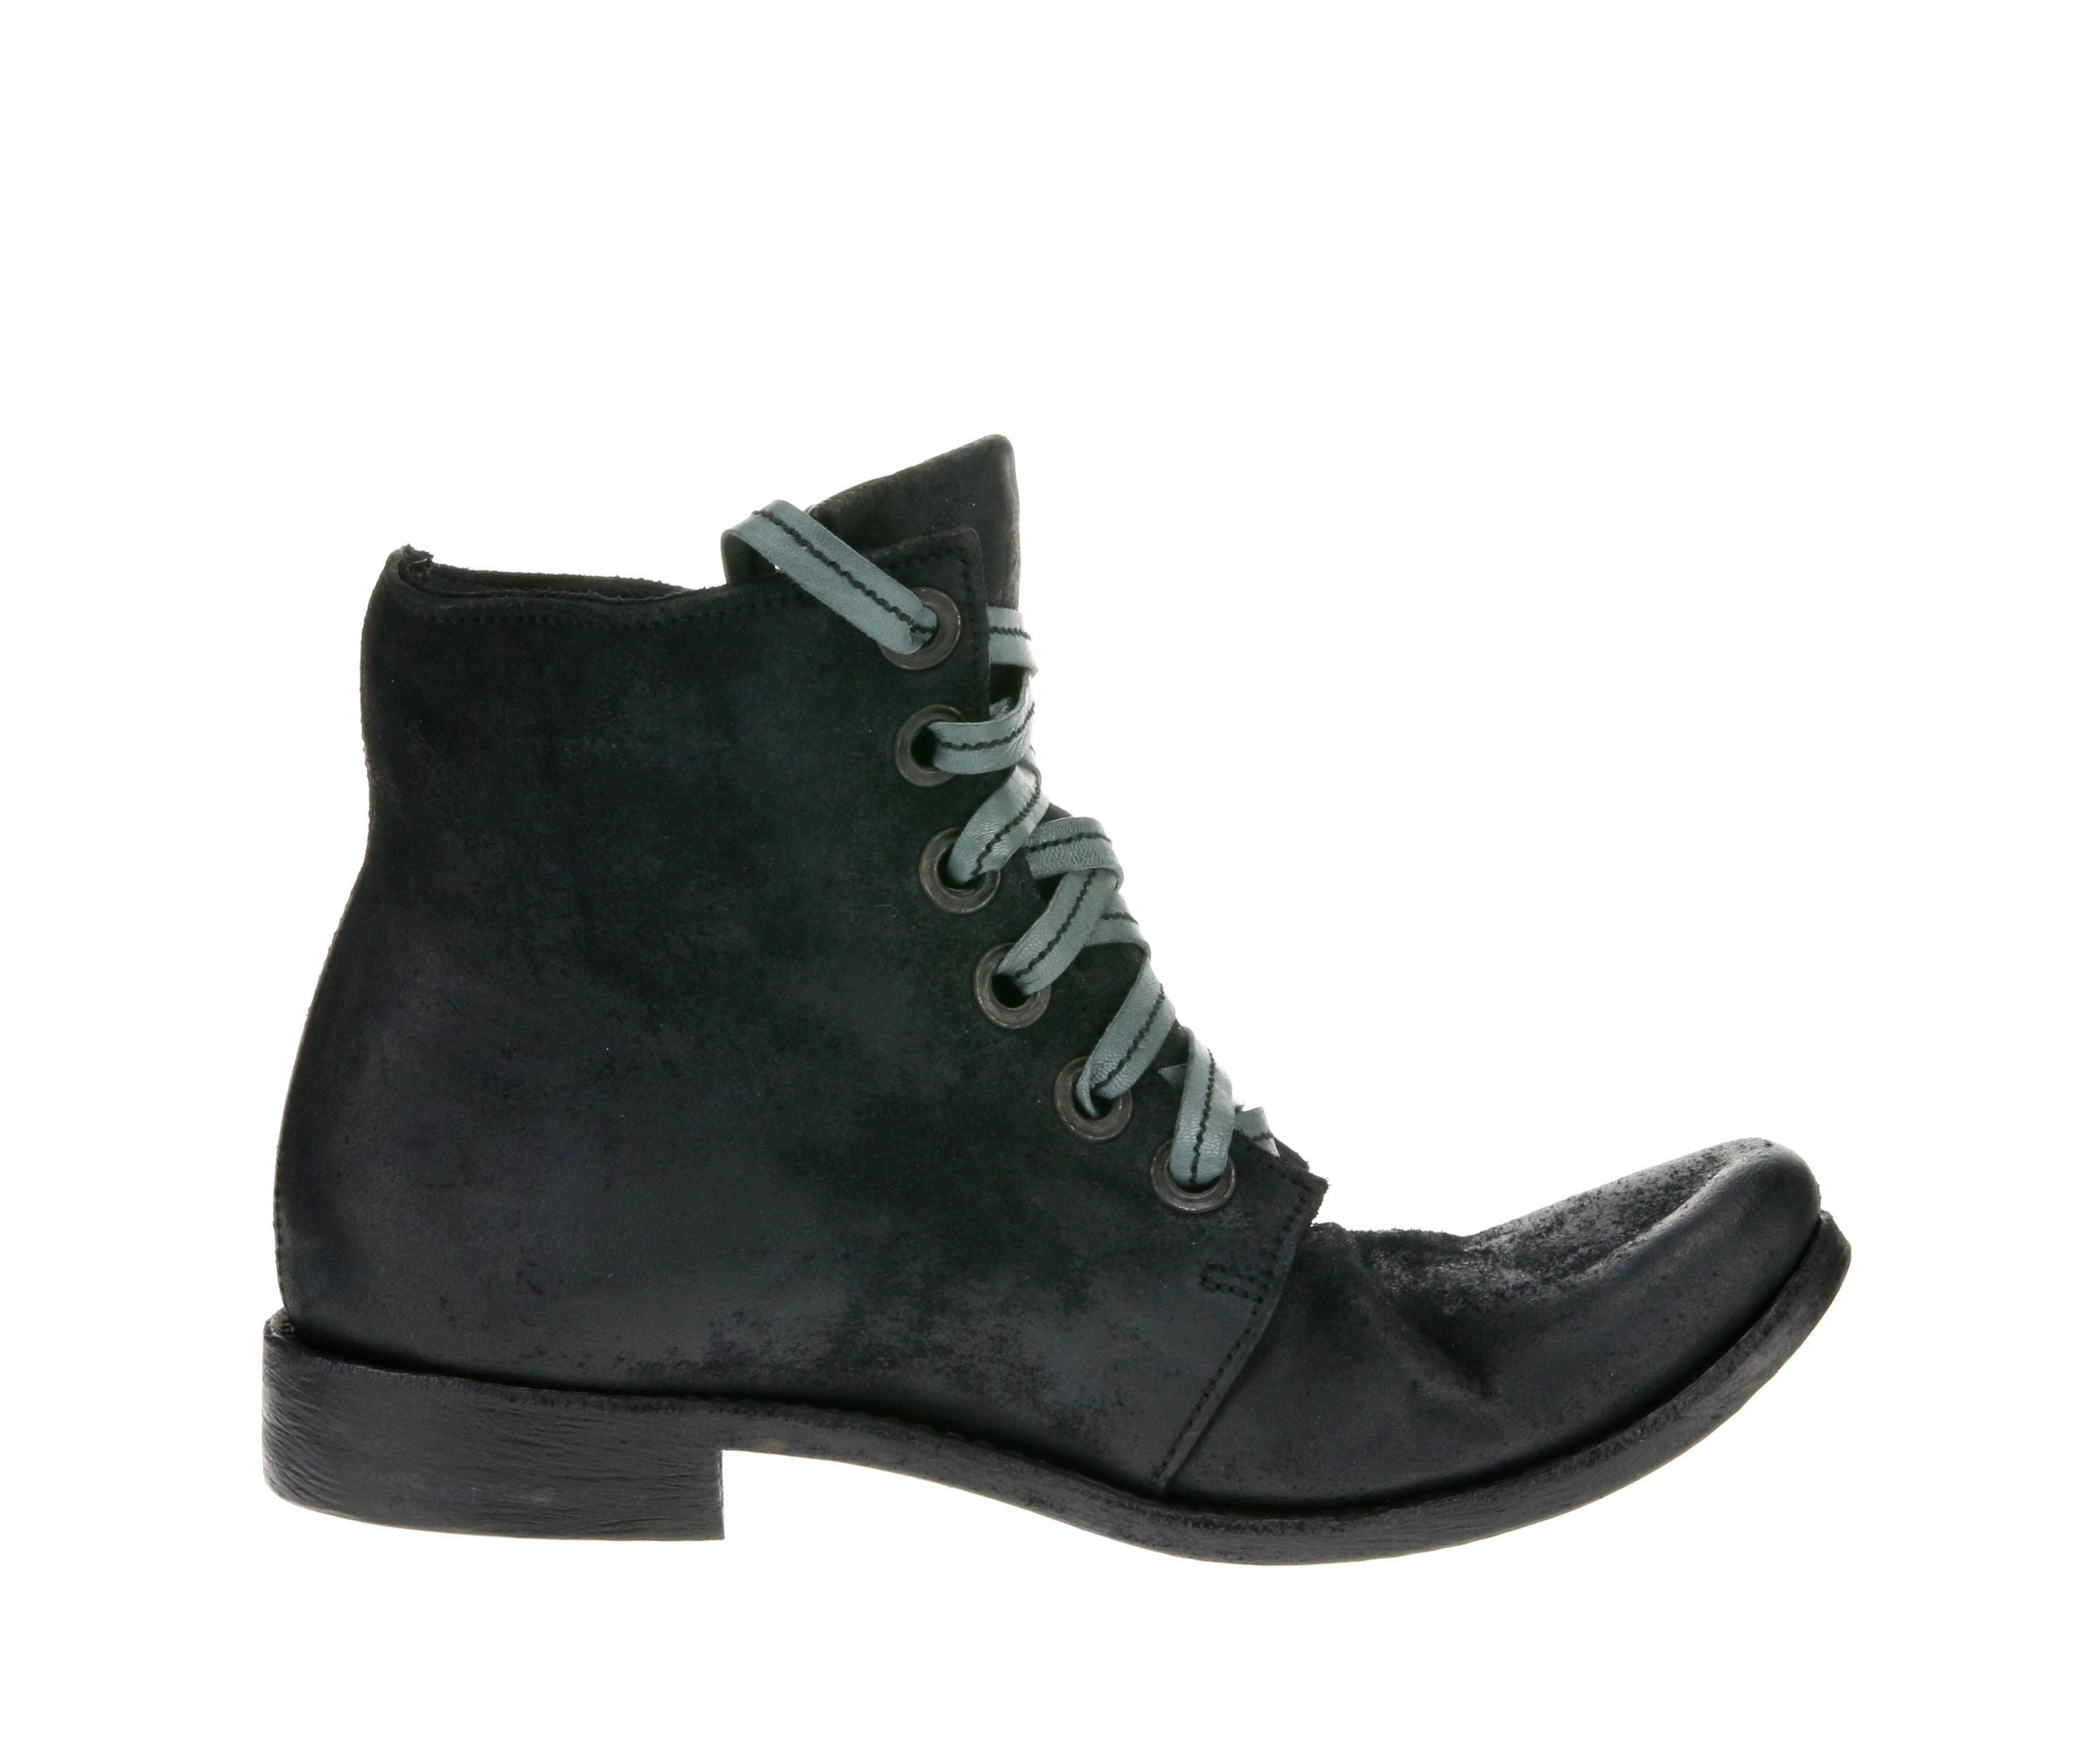 6Hole ASM Work Boot Narrow Inside Black Suede.jpg